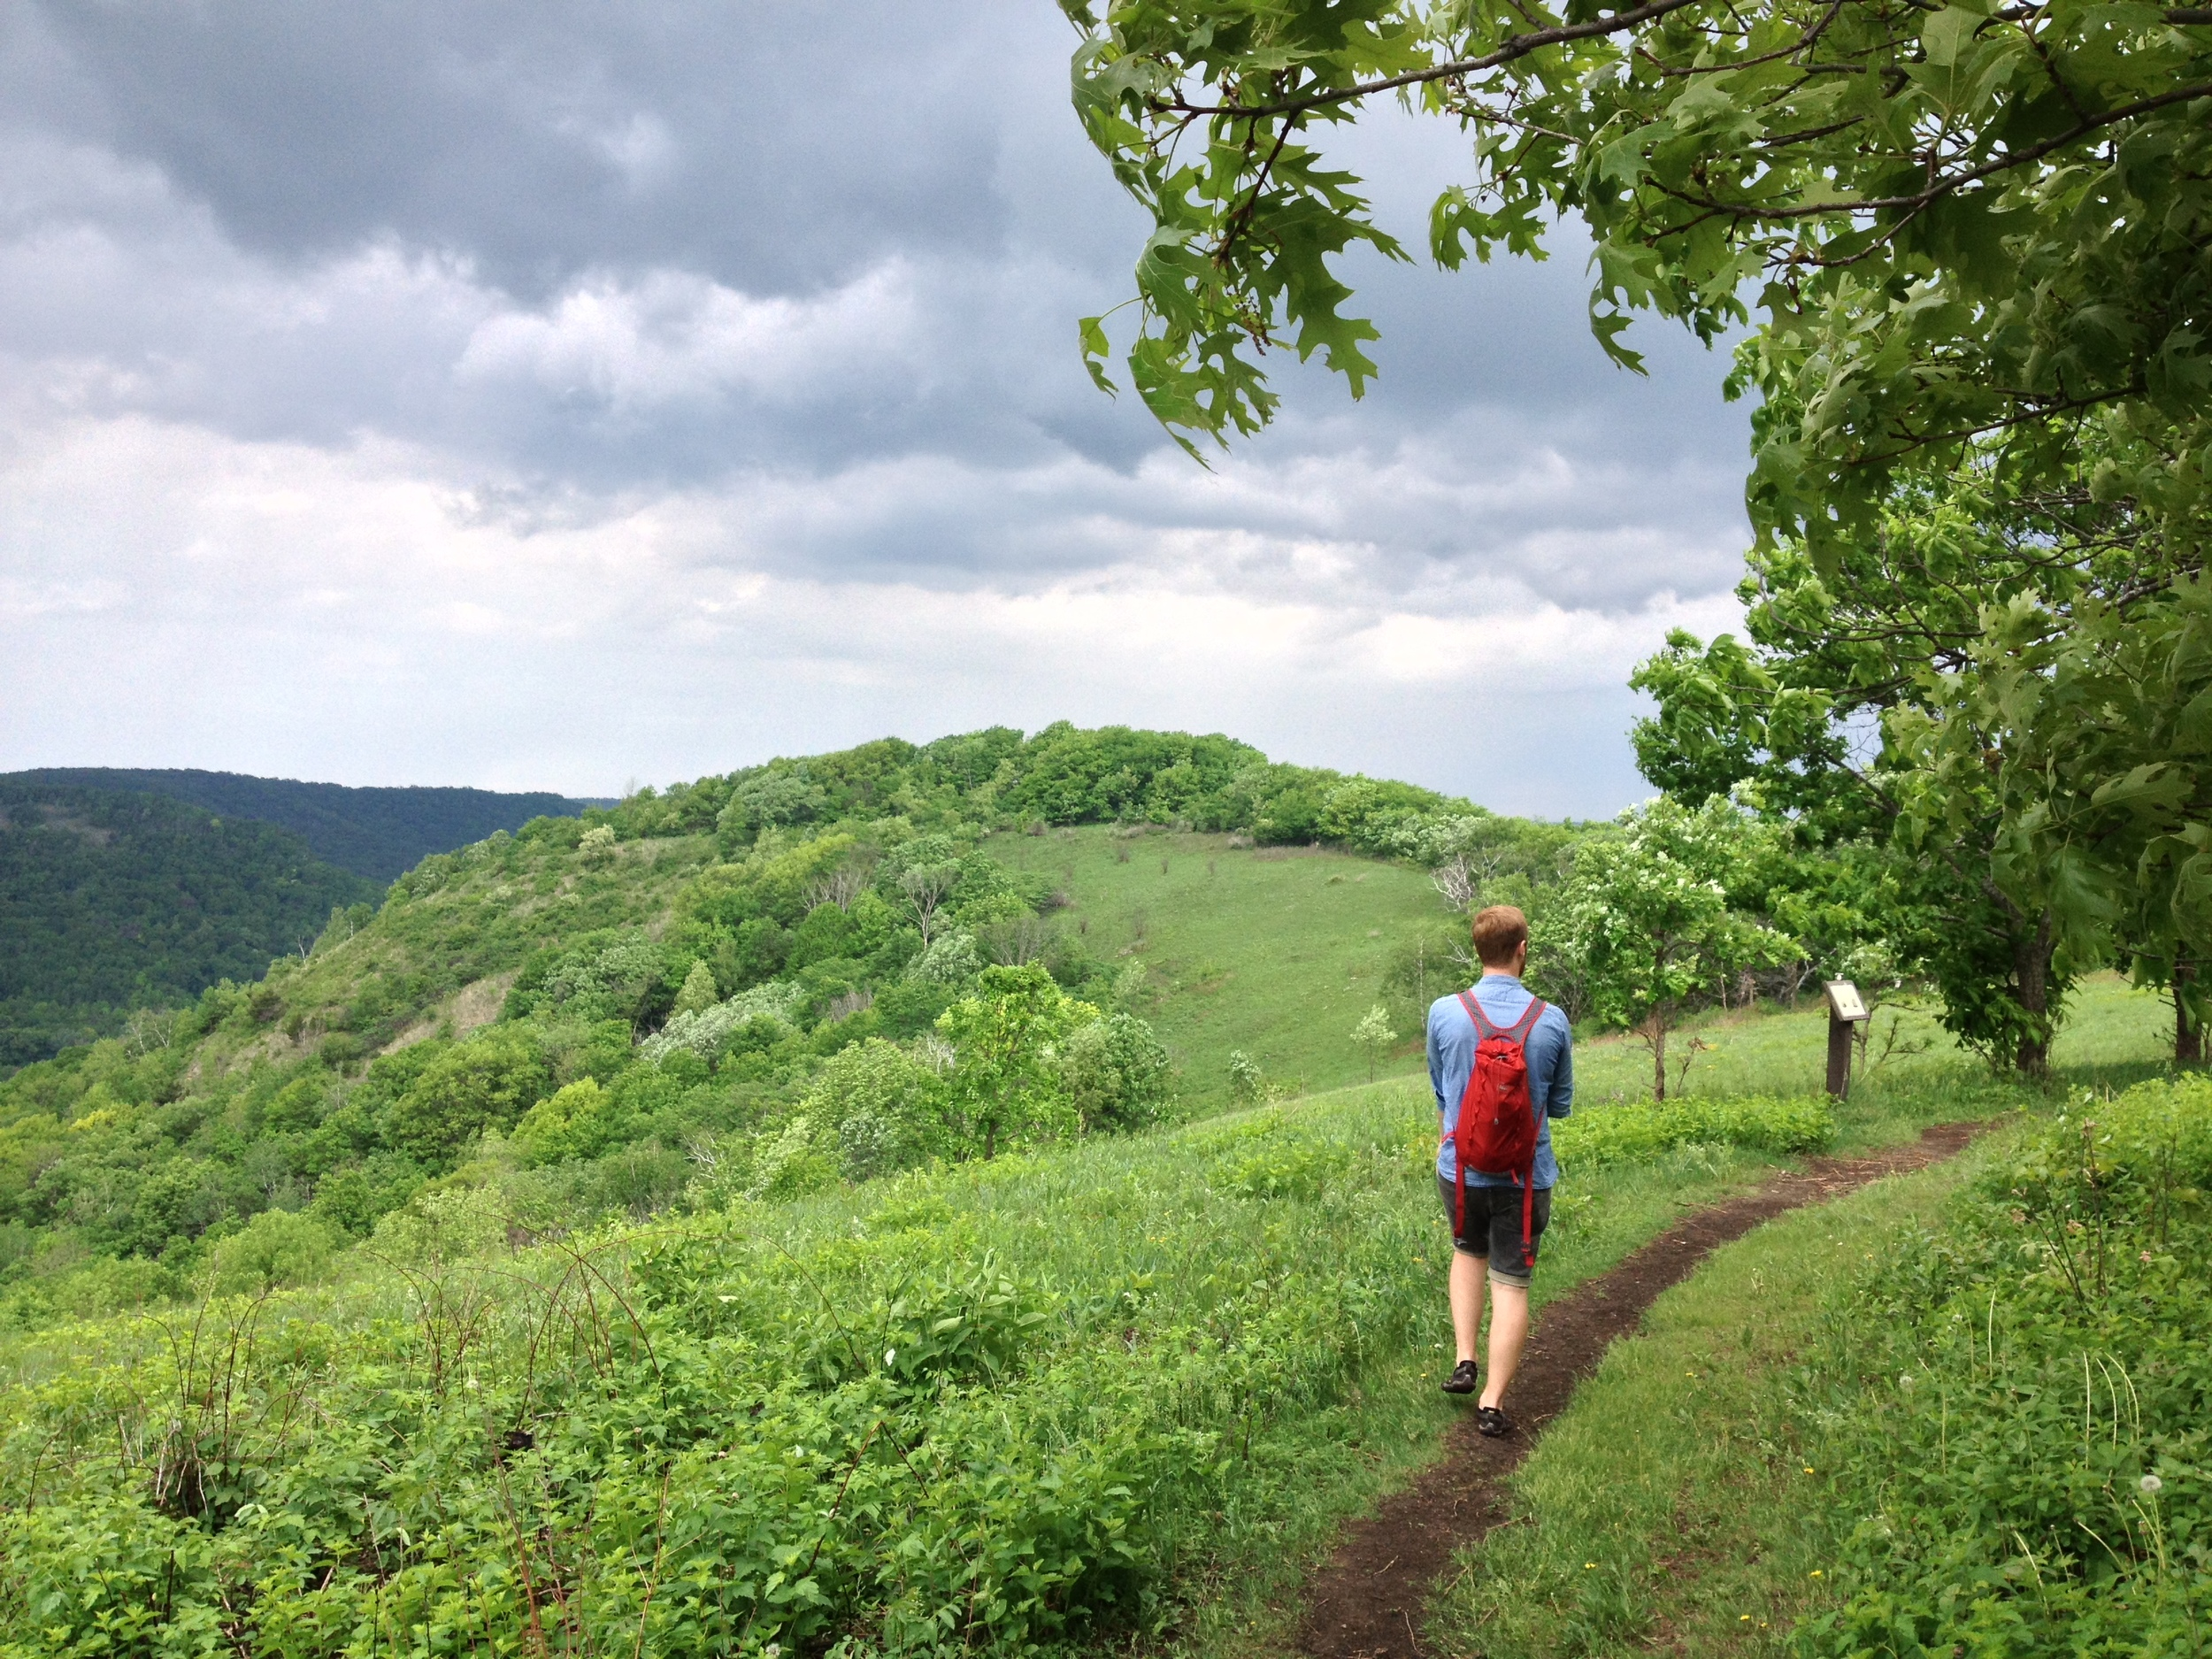 The Hiking Club Trail at Great River Bluffs State Park at the top of King's Bluff